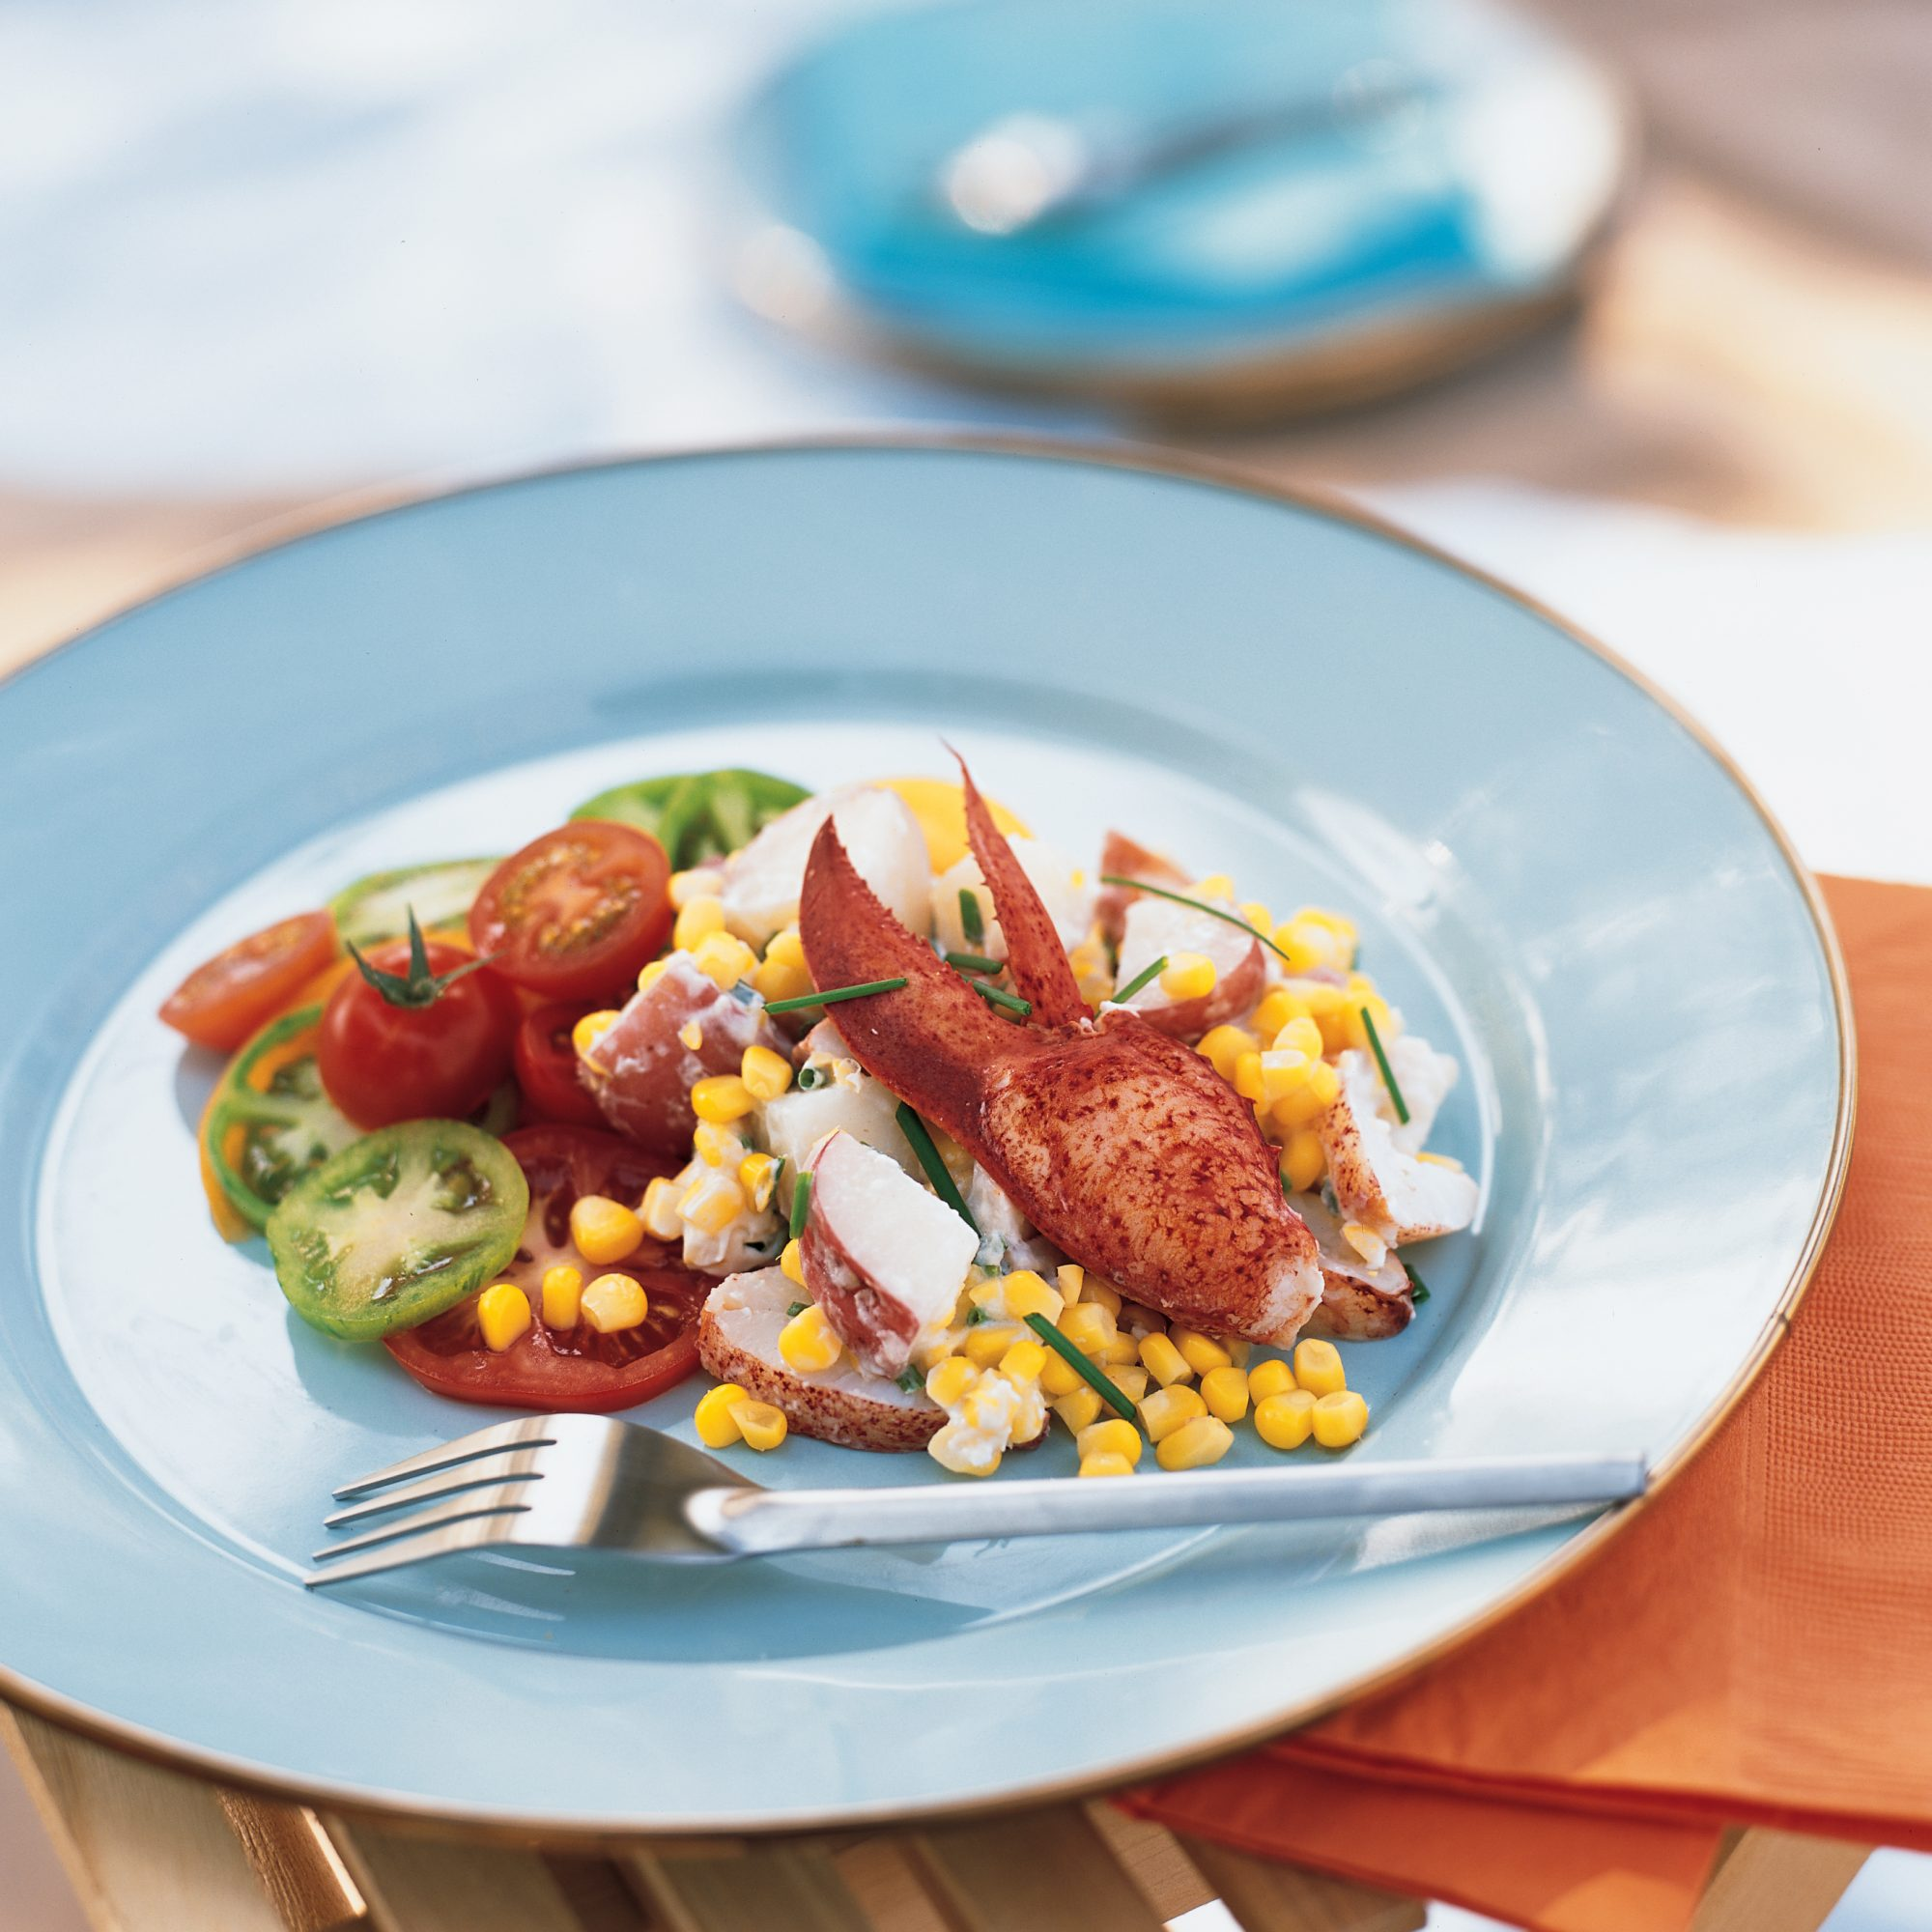 Lobster Salad with Potatoes, Corn and Tomatoes